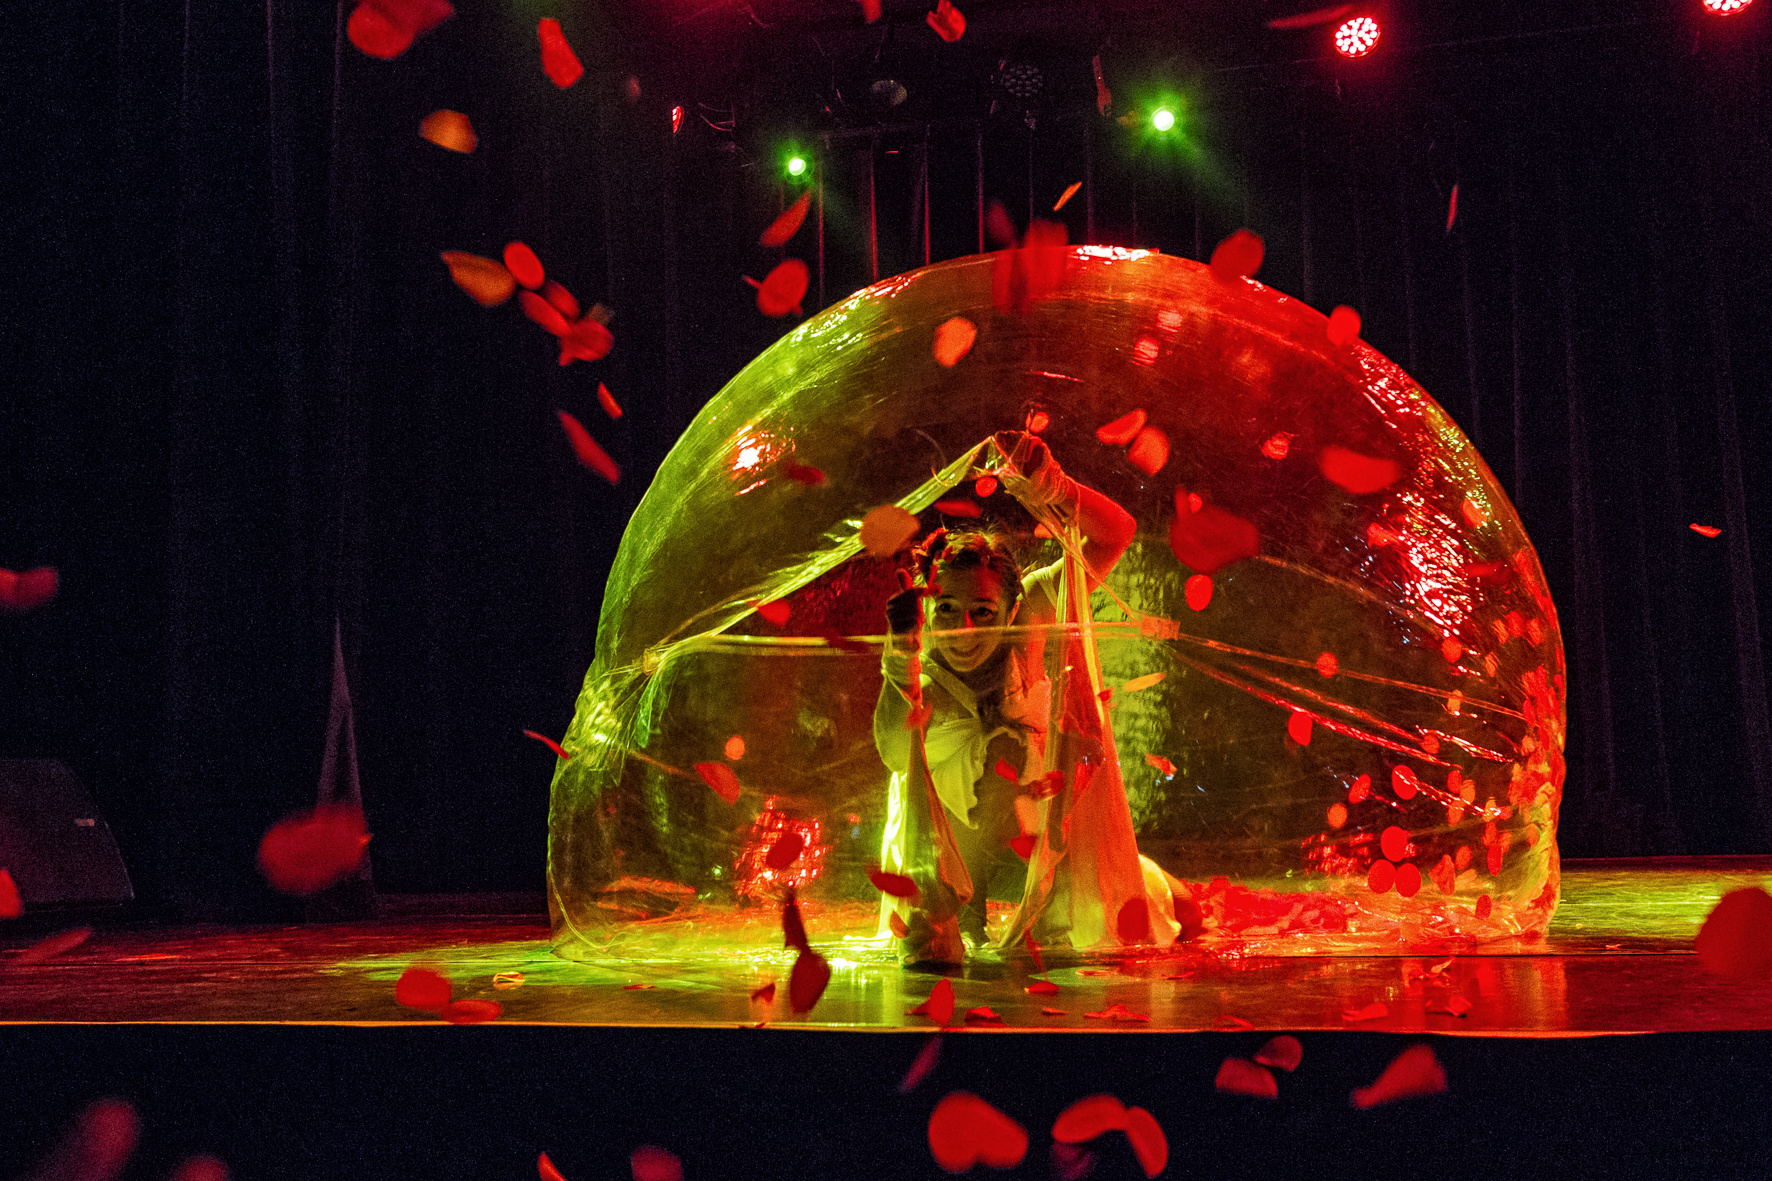 Spheric E-motion Bubble dance show.